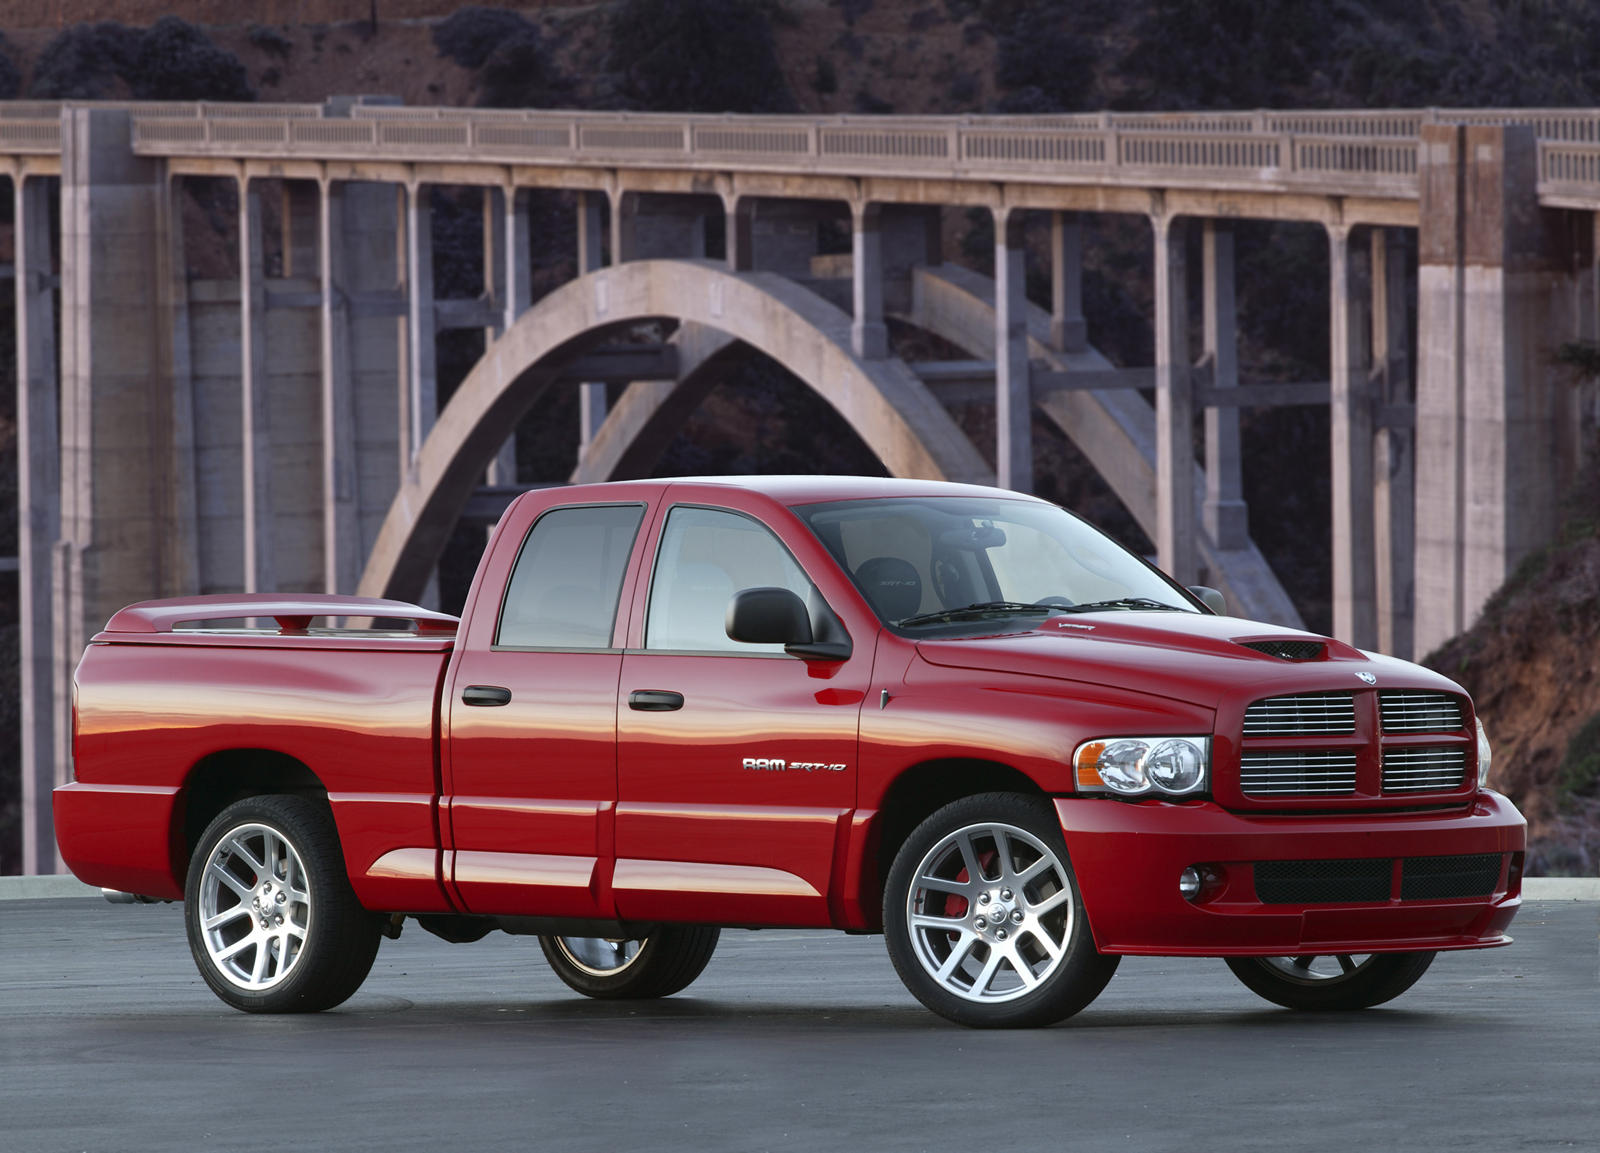 The Dodge Ram Srt 10 Is The Coolest Used Truck You Can Buy Carbuzz